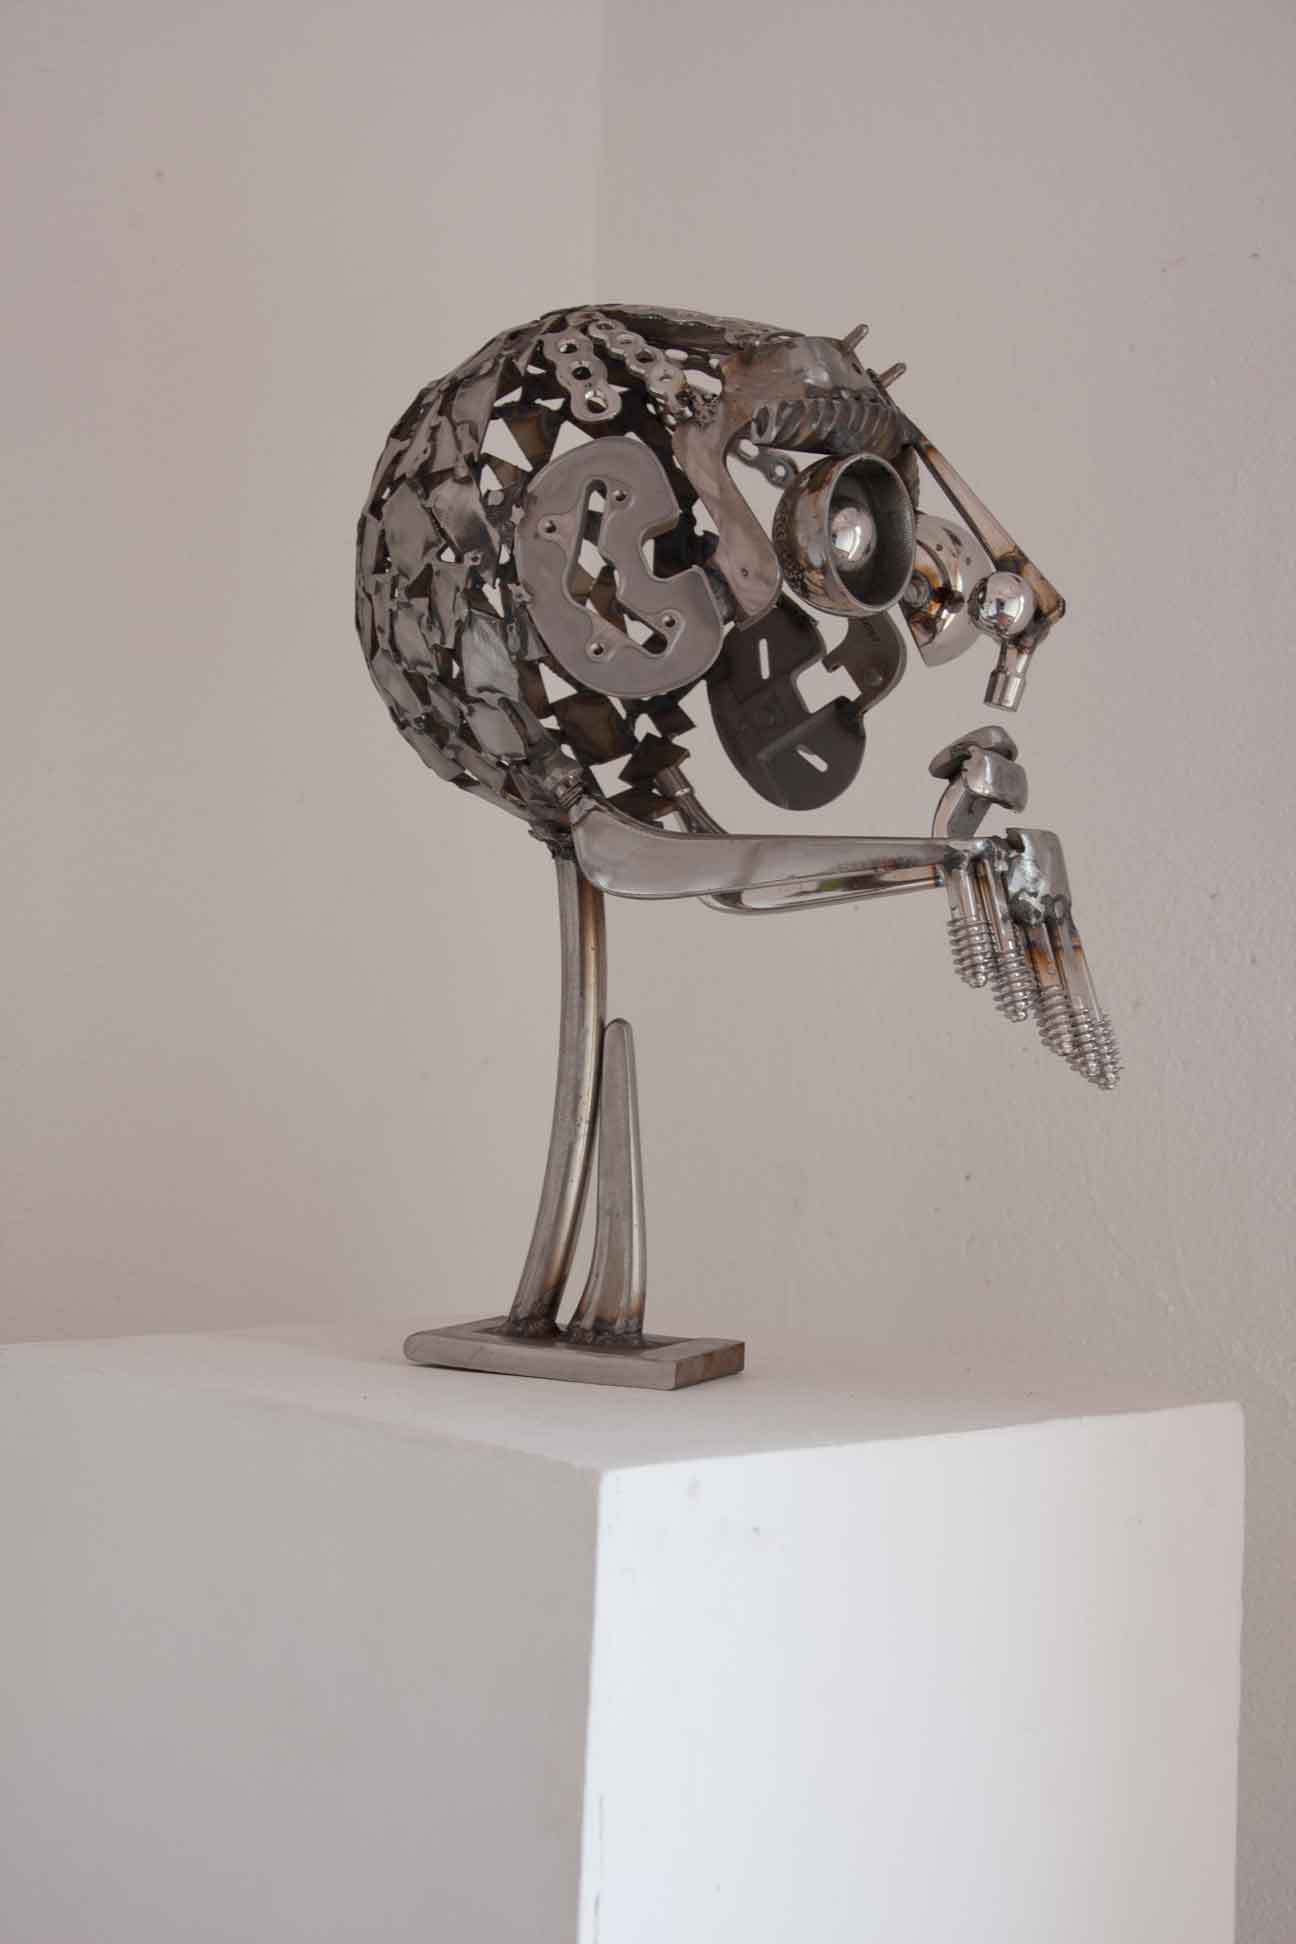 Stainless steal head sculpture